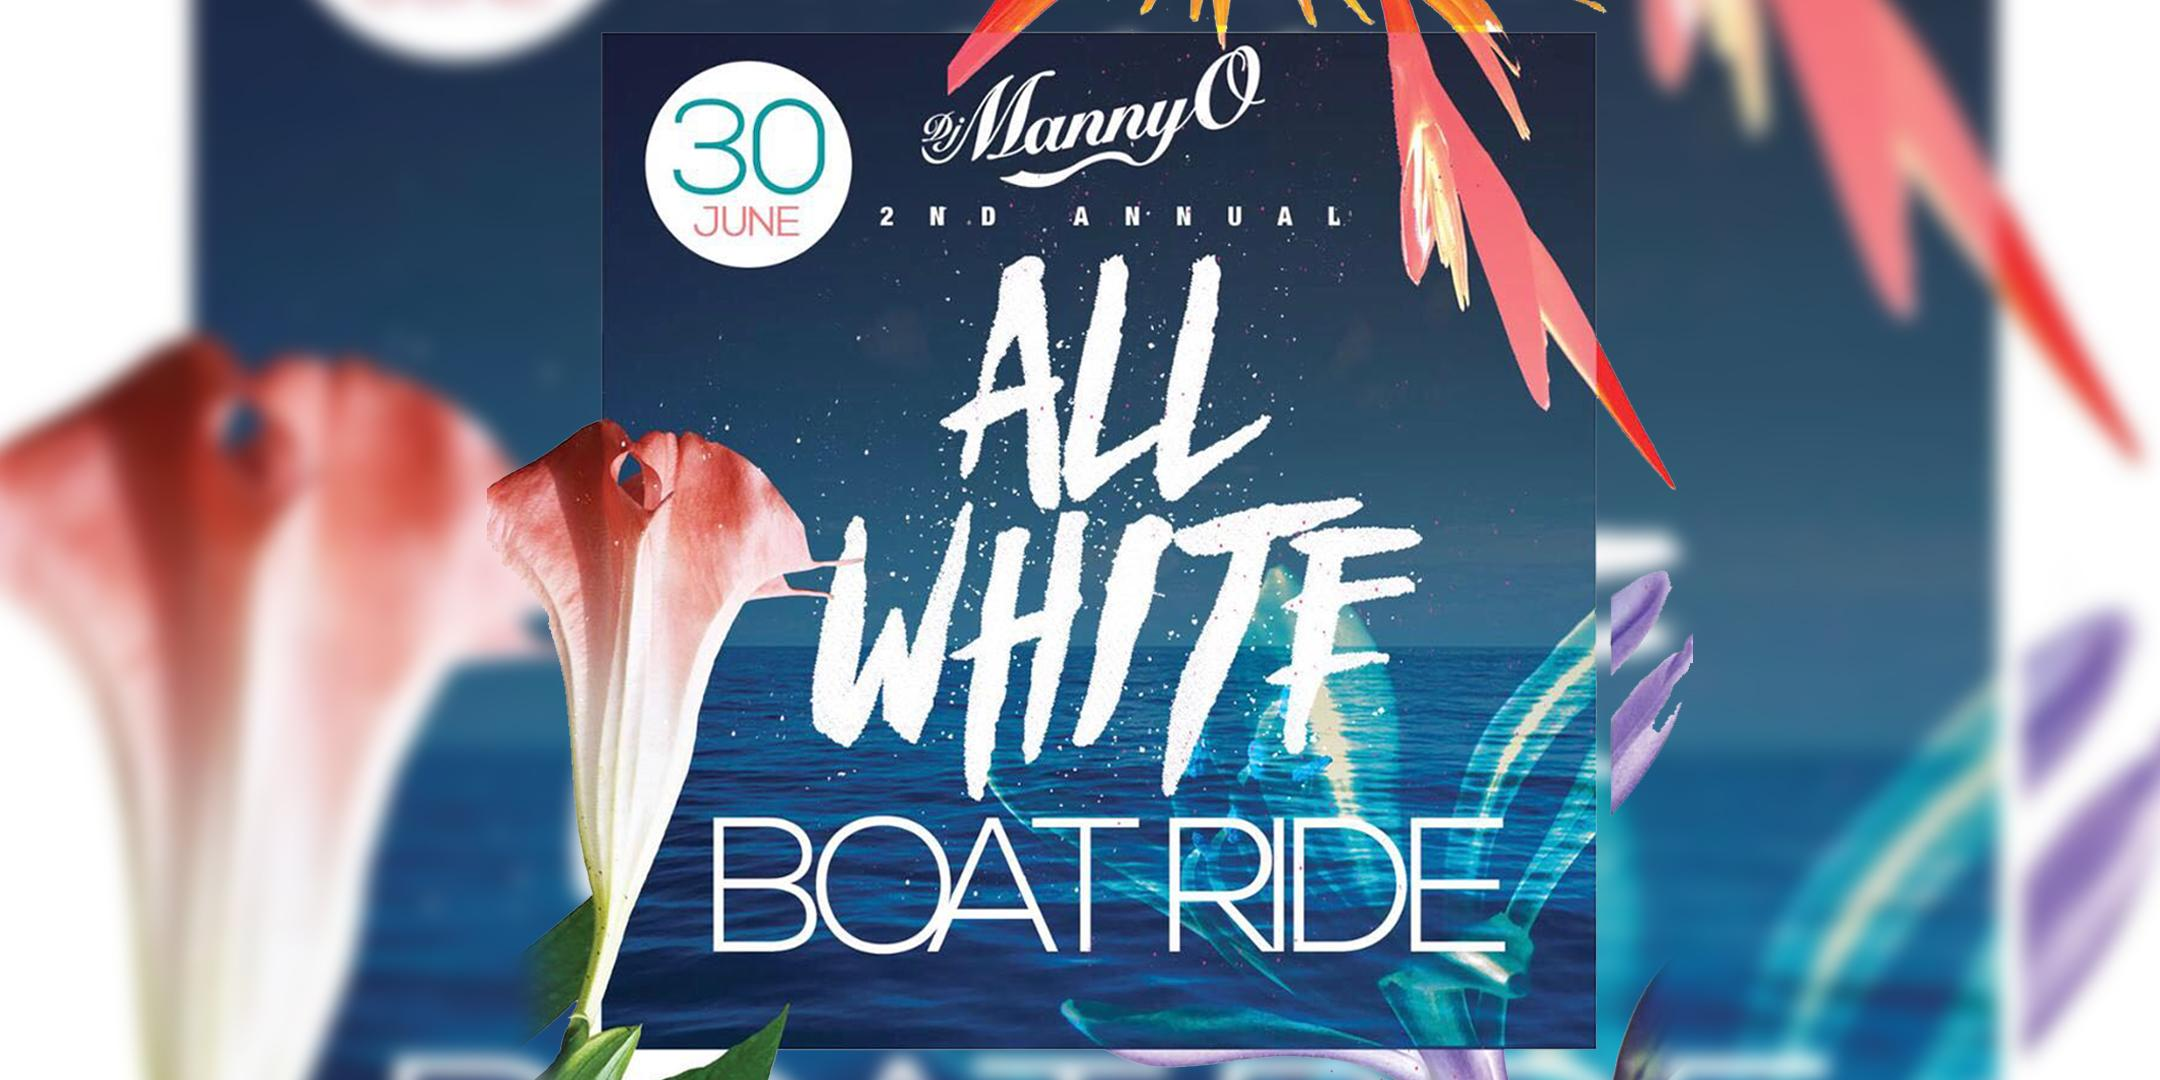 DJ MANNYO SECOND ANNUAL ALL WHITE BOAT RIDE . DJ MANNYO SECOND ANNUAL ALL WHITE BOAT RIDE